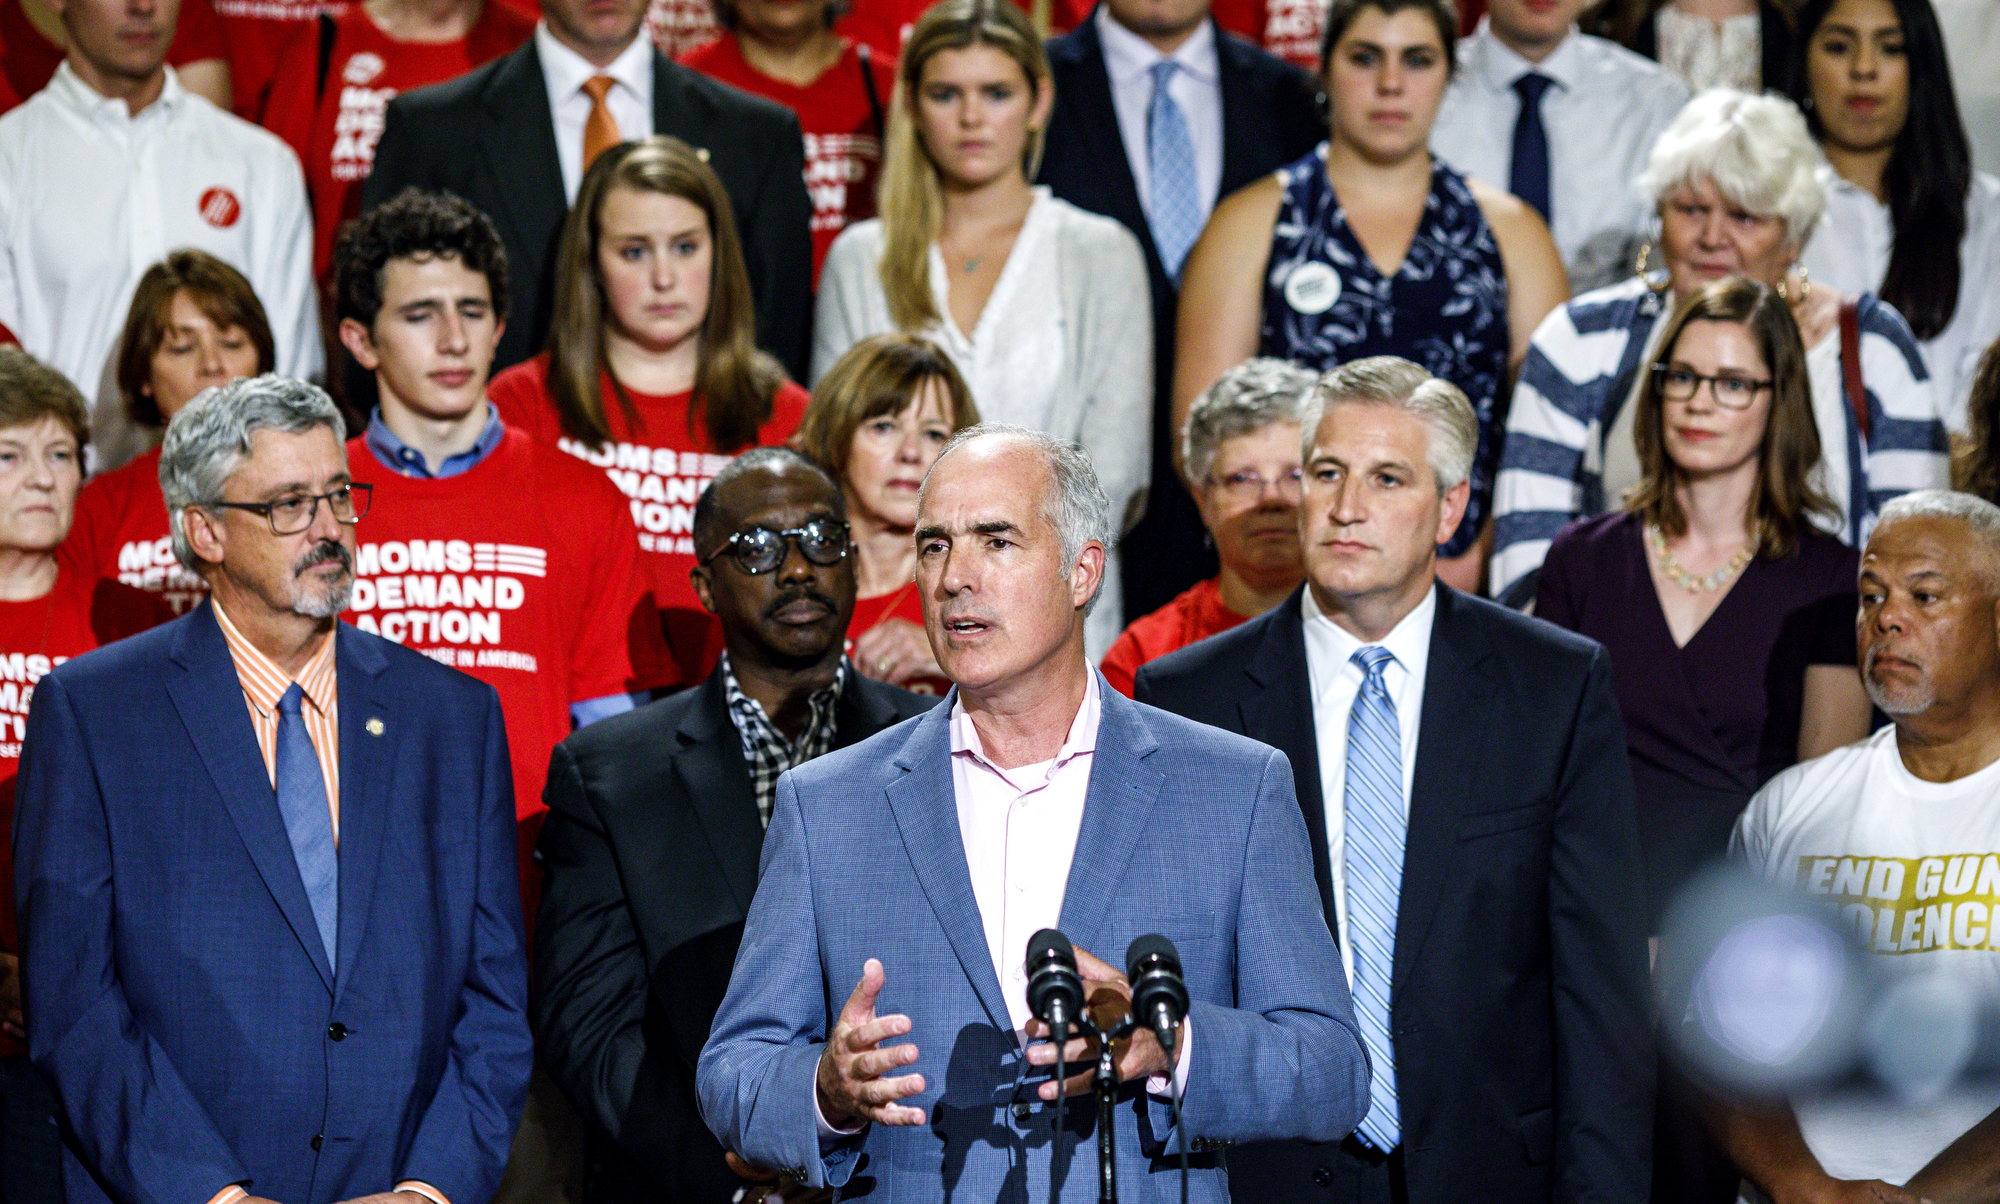 Gov. Wolf, Sen. Casey call for action on guns after mass shootings